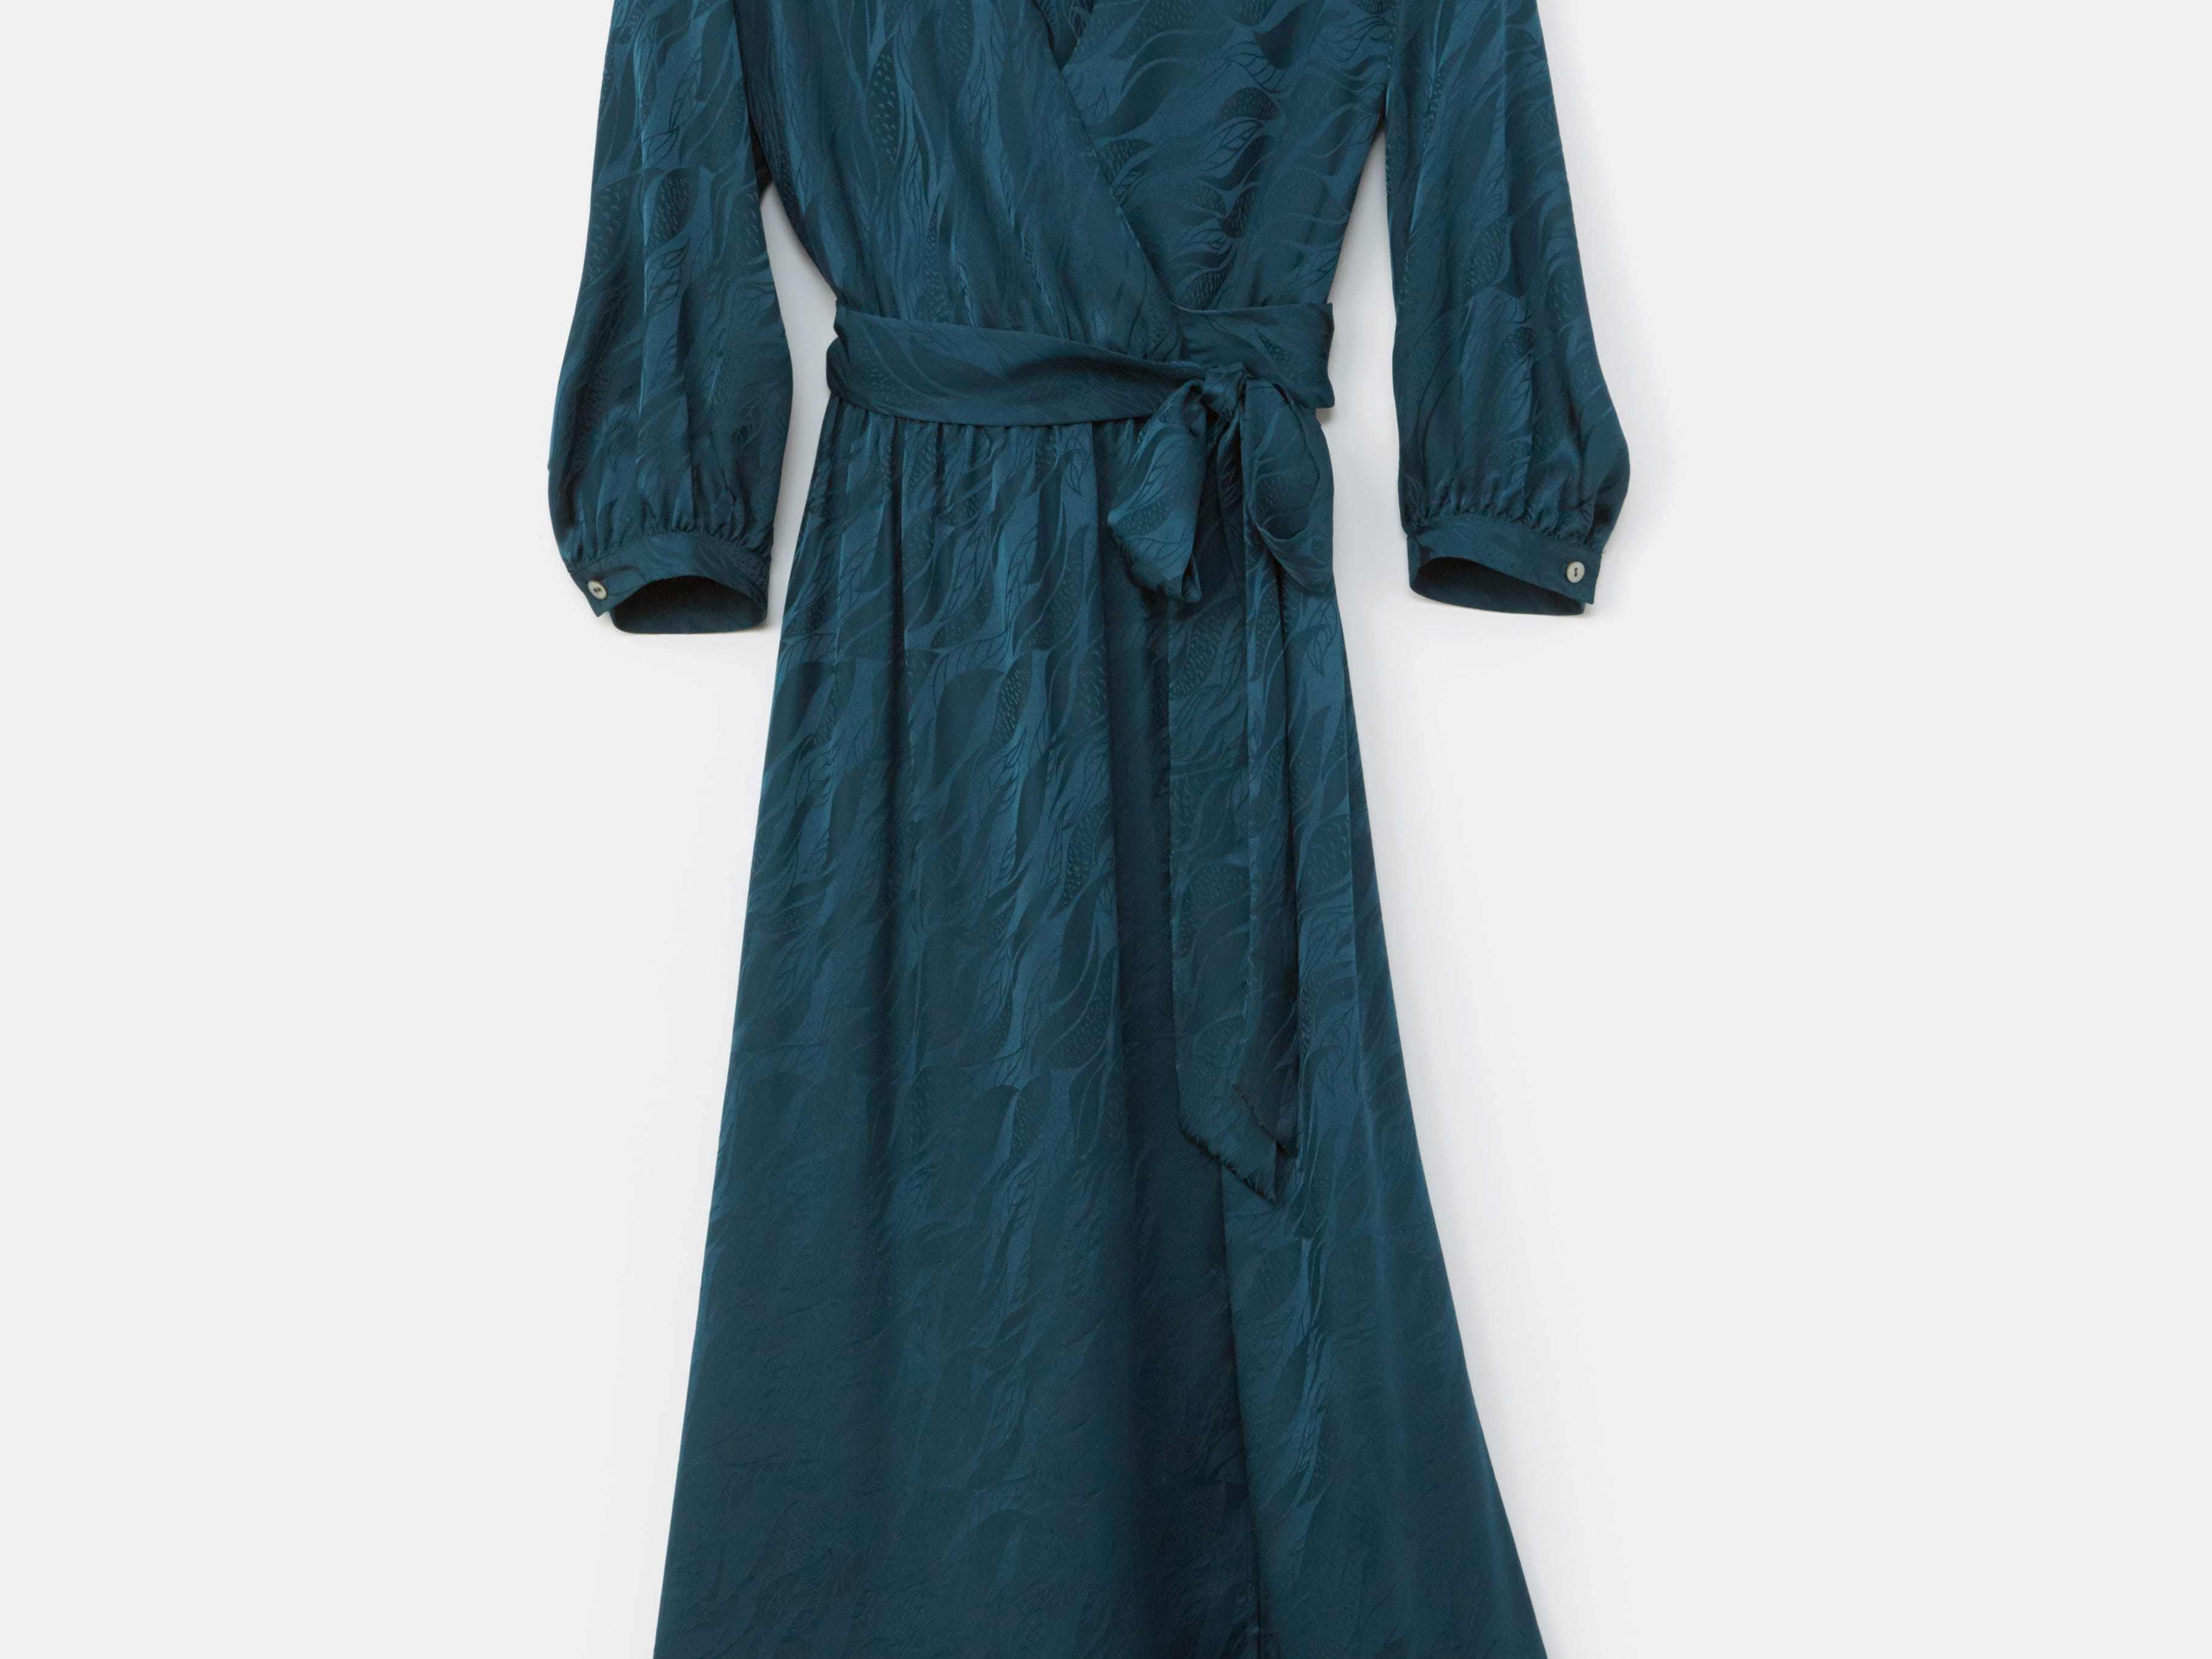 Another fashion brand built around sustainable fashion is Amour Vert. The company says all of the fabric it uses is sustainable and all of their dyes it uses are non-toxic. Here, a wrapped teal dress from the brand's fall line made of sustainably produced Jacquard silk fabric. Price: $278.